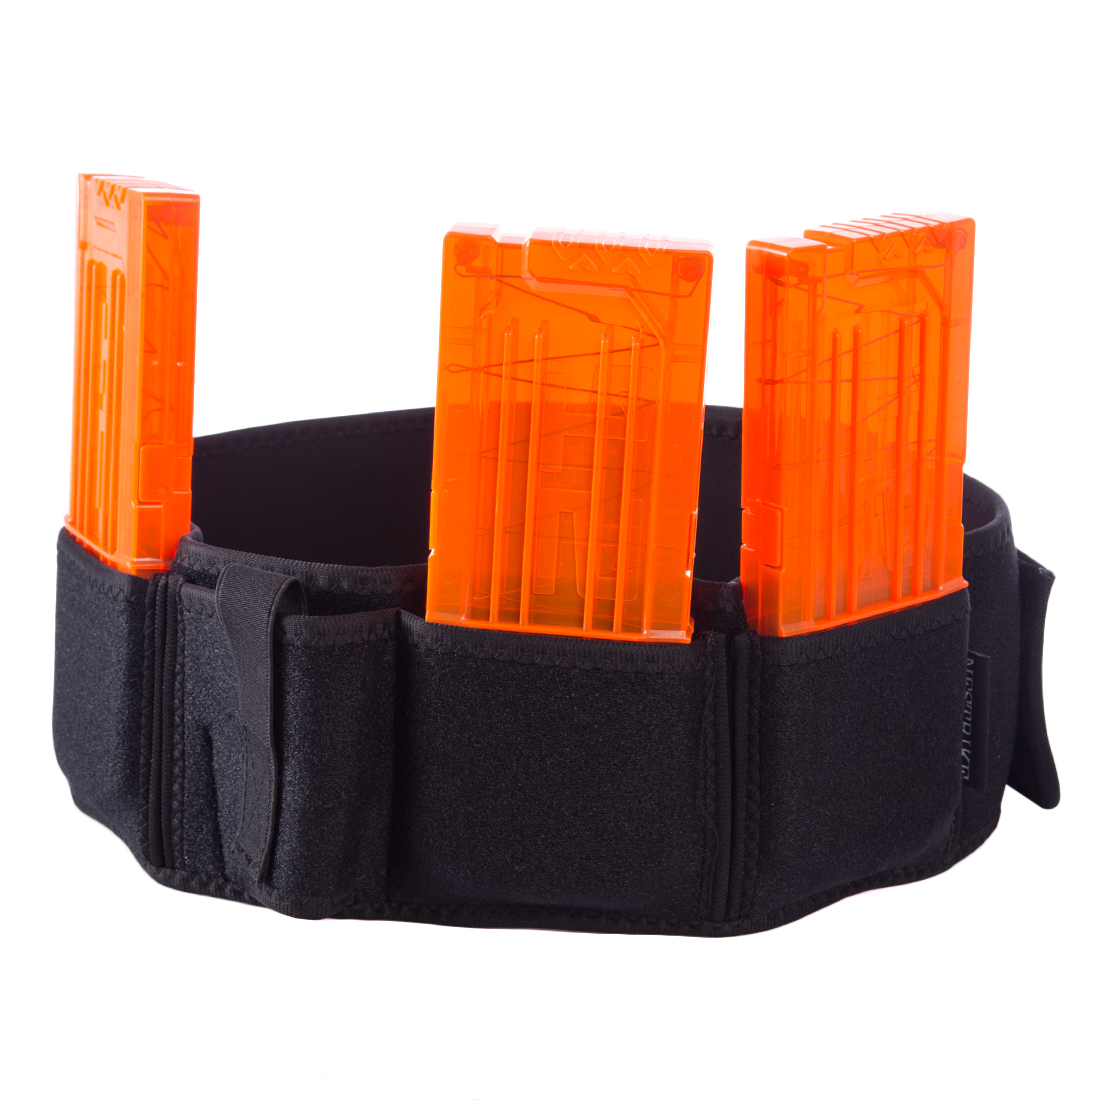 Rowsfire 1 Pcs Tactical Stretchy Belt Kit - with 3 Mag Pouch for Nerf Game Anything for Nerf Teenager (Black Belt+Orange Mag) аквабокс aquapac small stormproof pouch orange 036 page 3